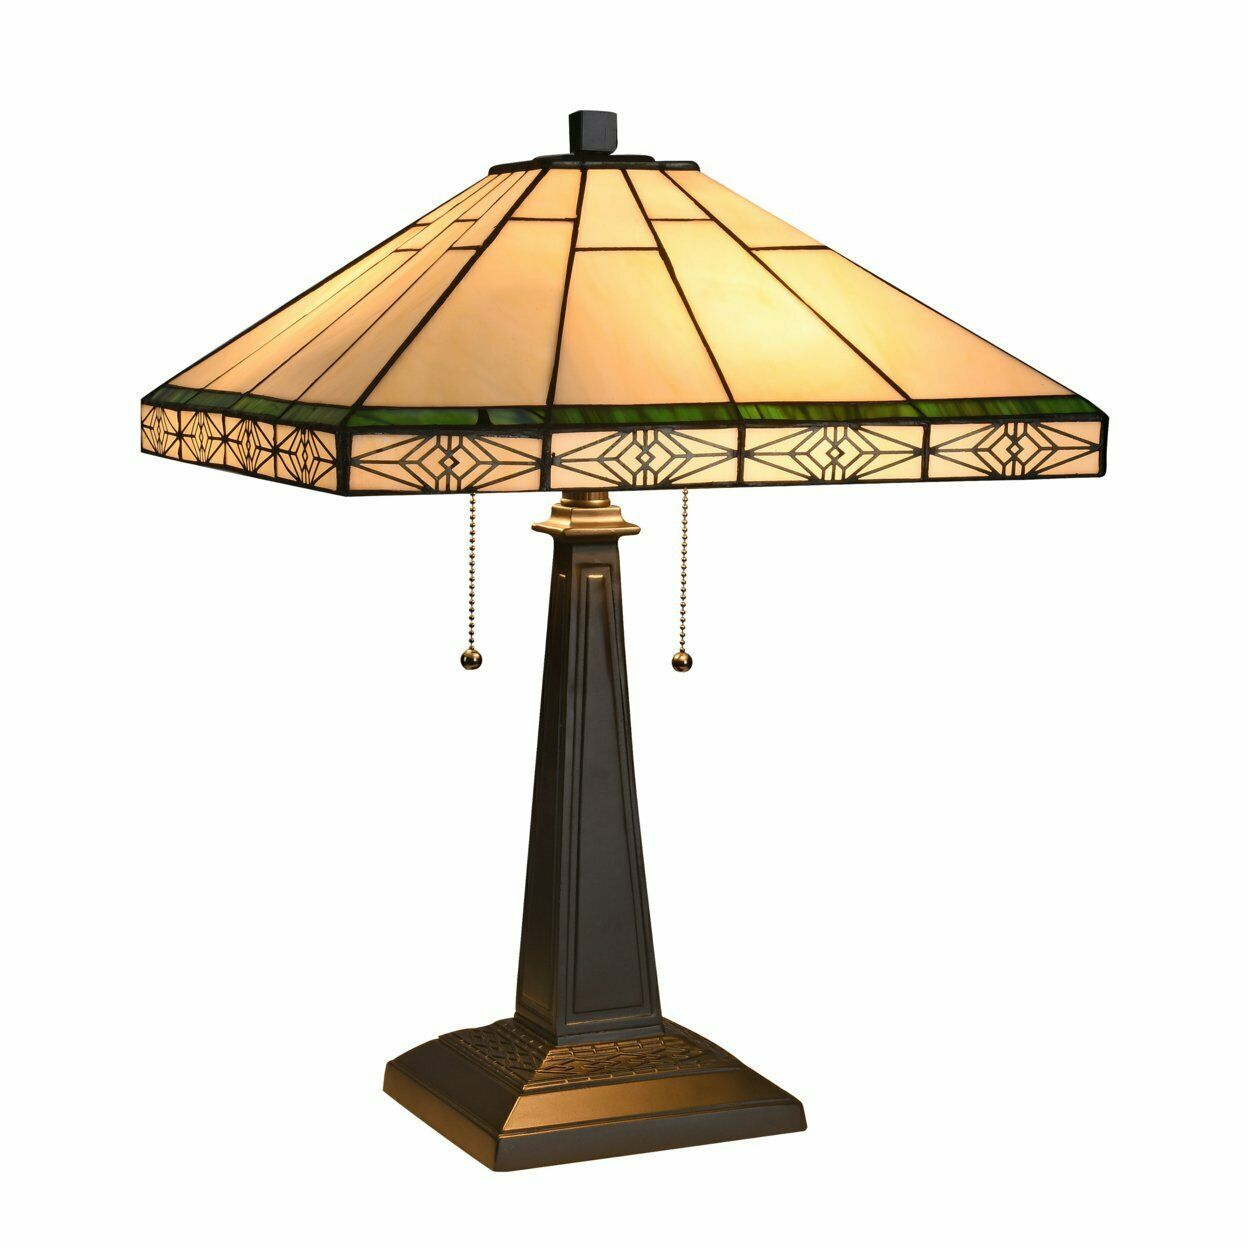 Pin On Tiffany Lamps